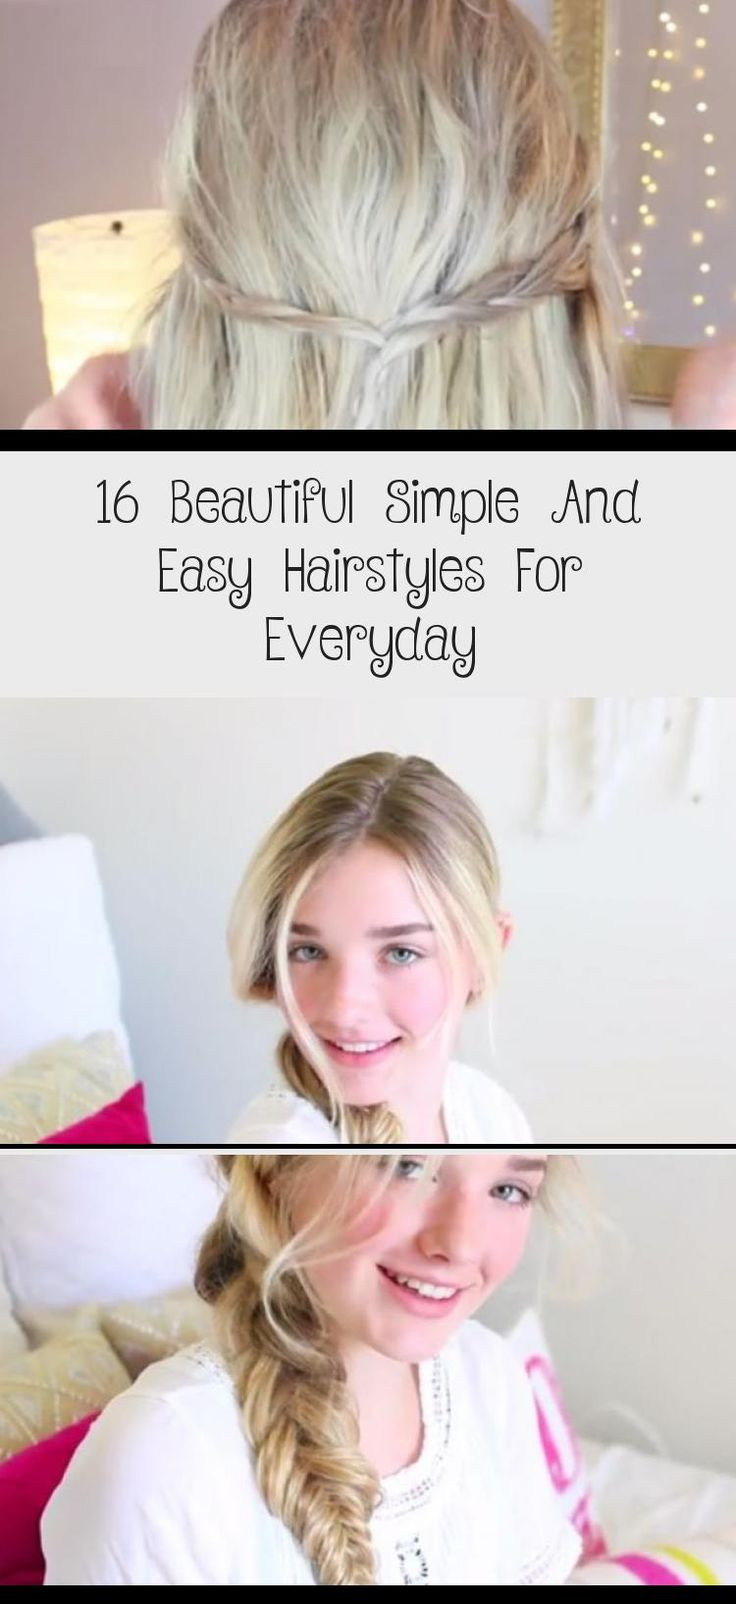 16 Beautiful Simple And Easy Hairstyles For Everyday | Everyday hairstyles, Hair styles, Easy ...